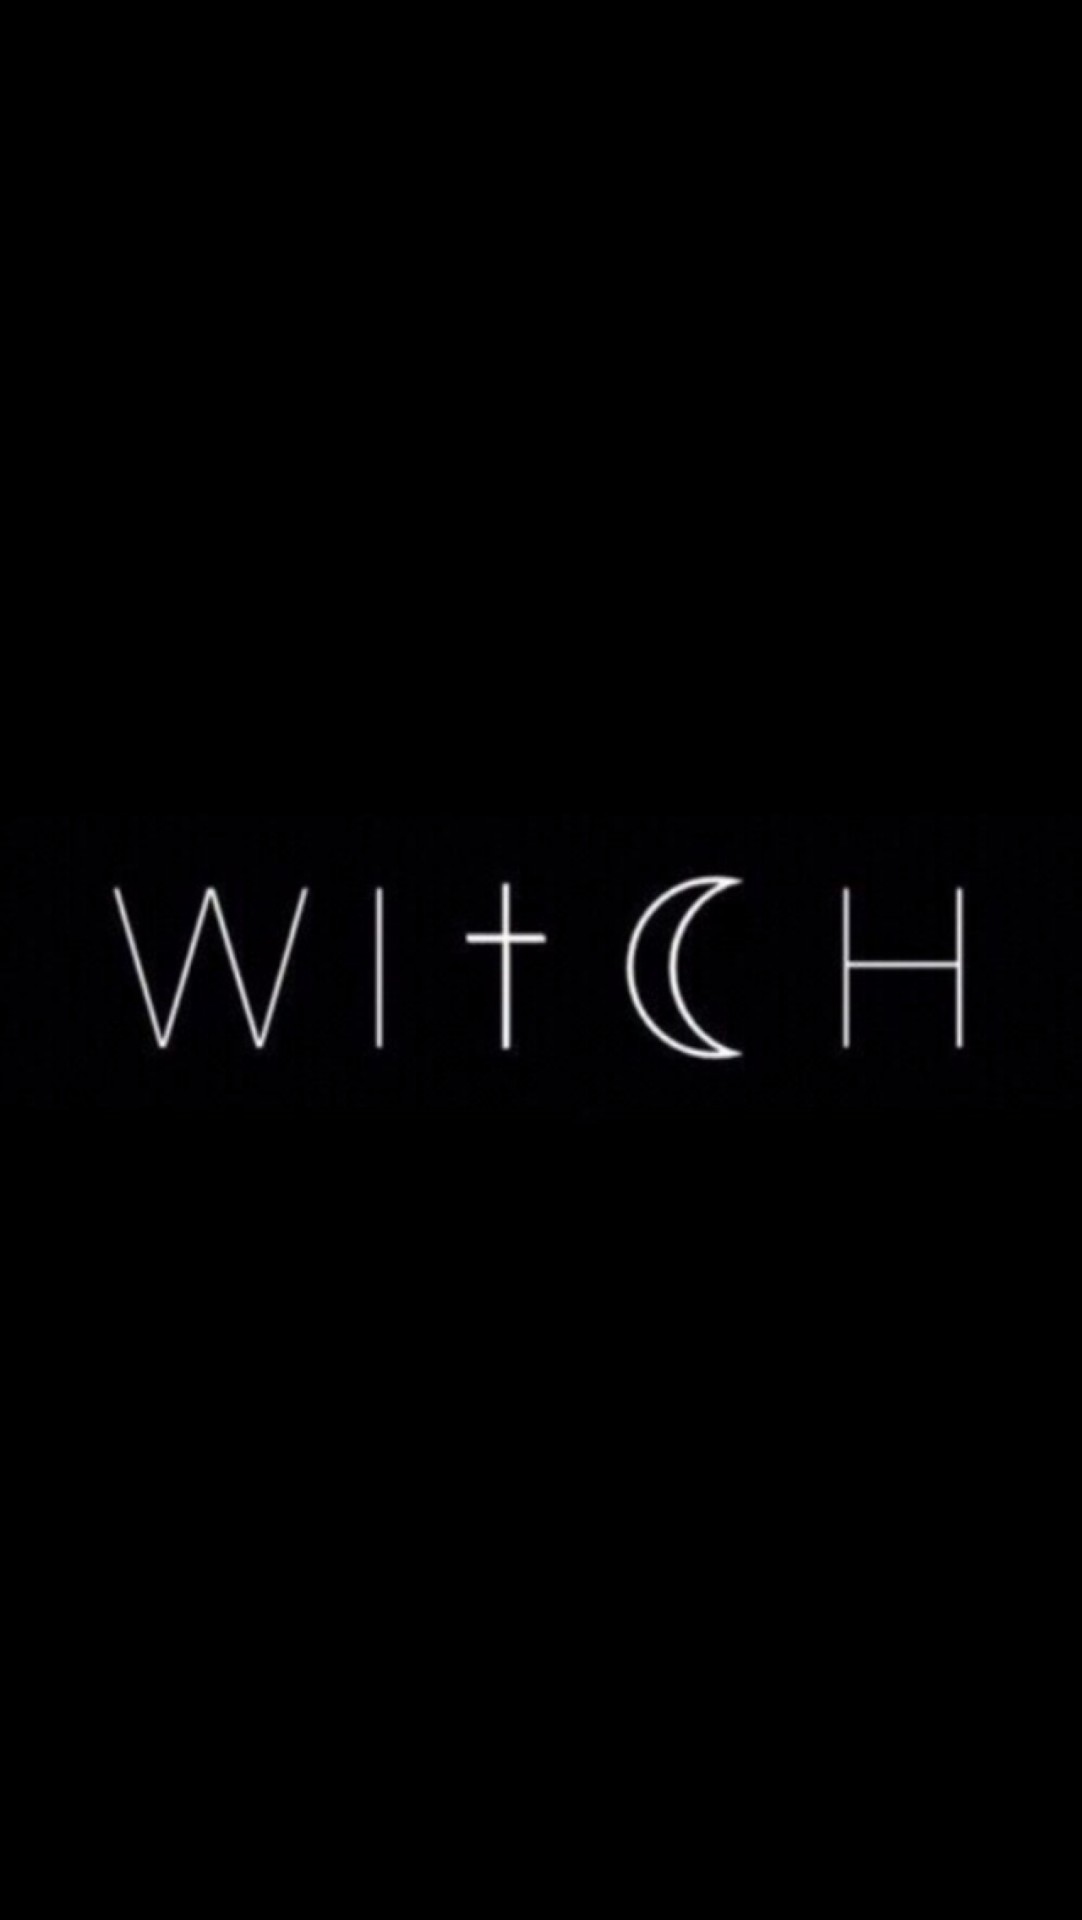 Witches Tumblr Dark Phone Wallpapers Witchy Wallpaper Funny Phone Wallpaper